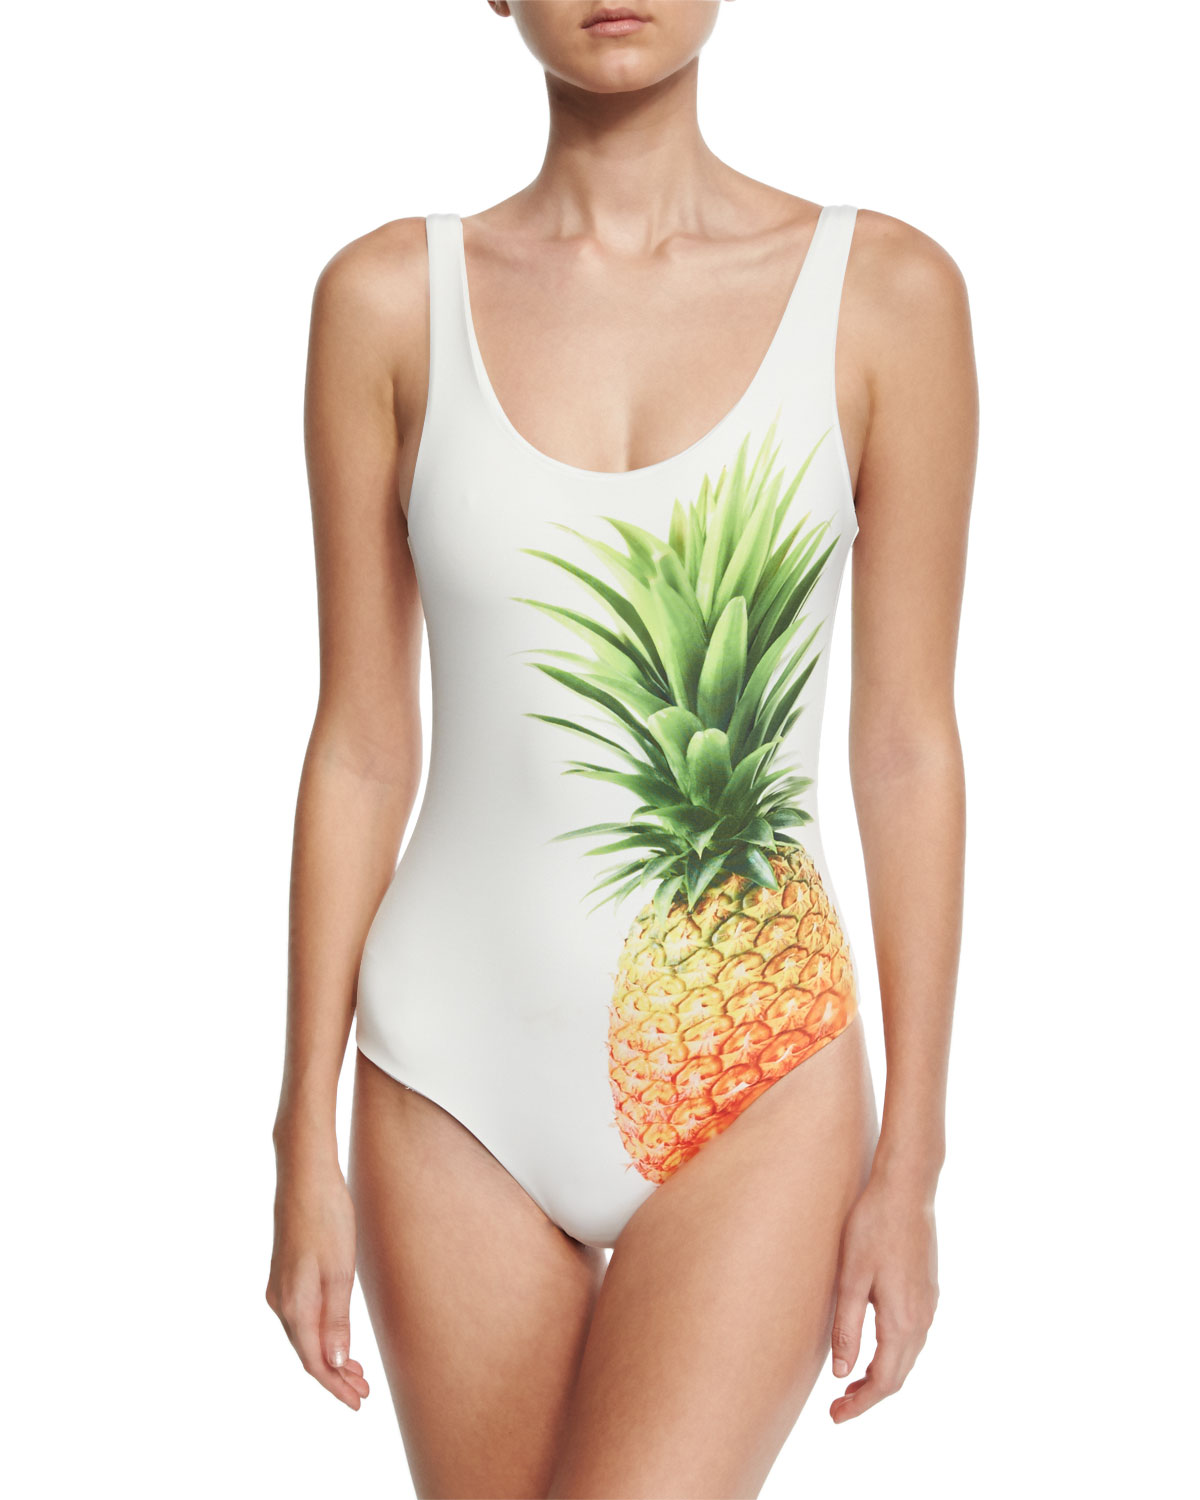 Kelly Pineapple-Print One-Piece Swimsuit, White